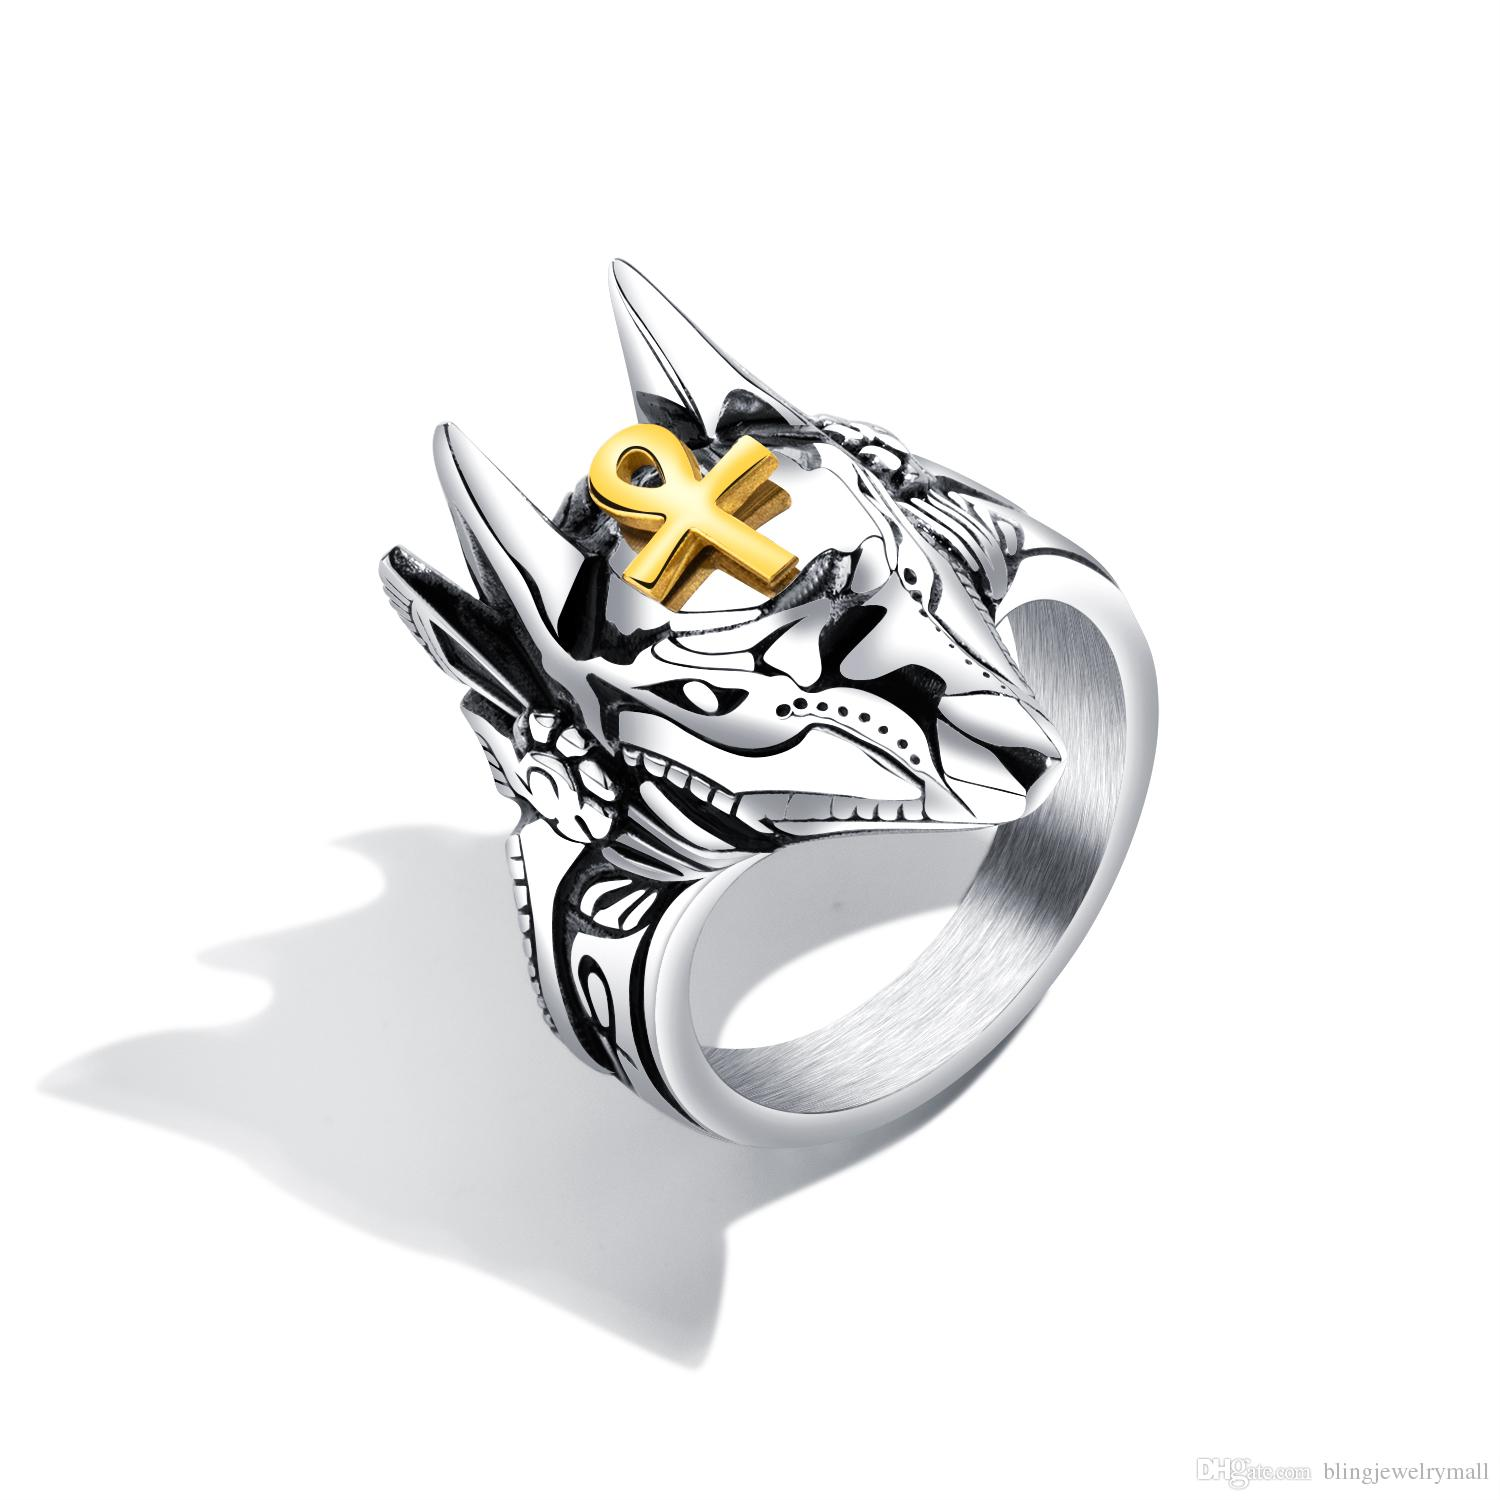 Punk Anubis Egyptian Cross Beast Ring For Men Stainless Steel Ankh Cross Design Motorcycle Finger Ring Cool Jewelry Gift GJ626